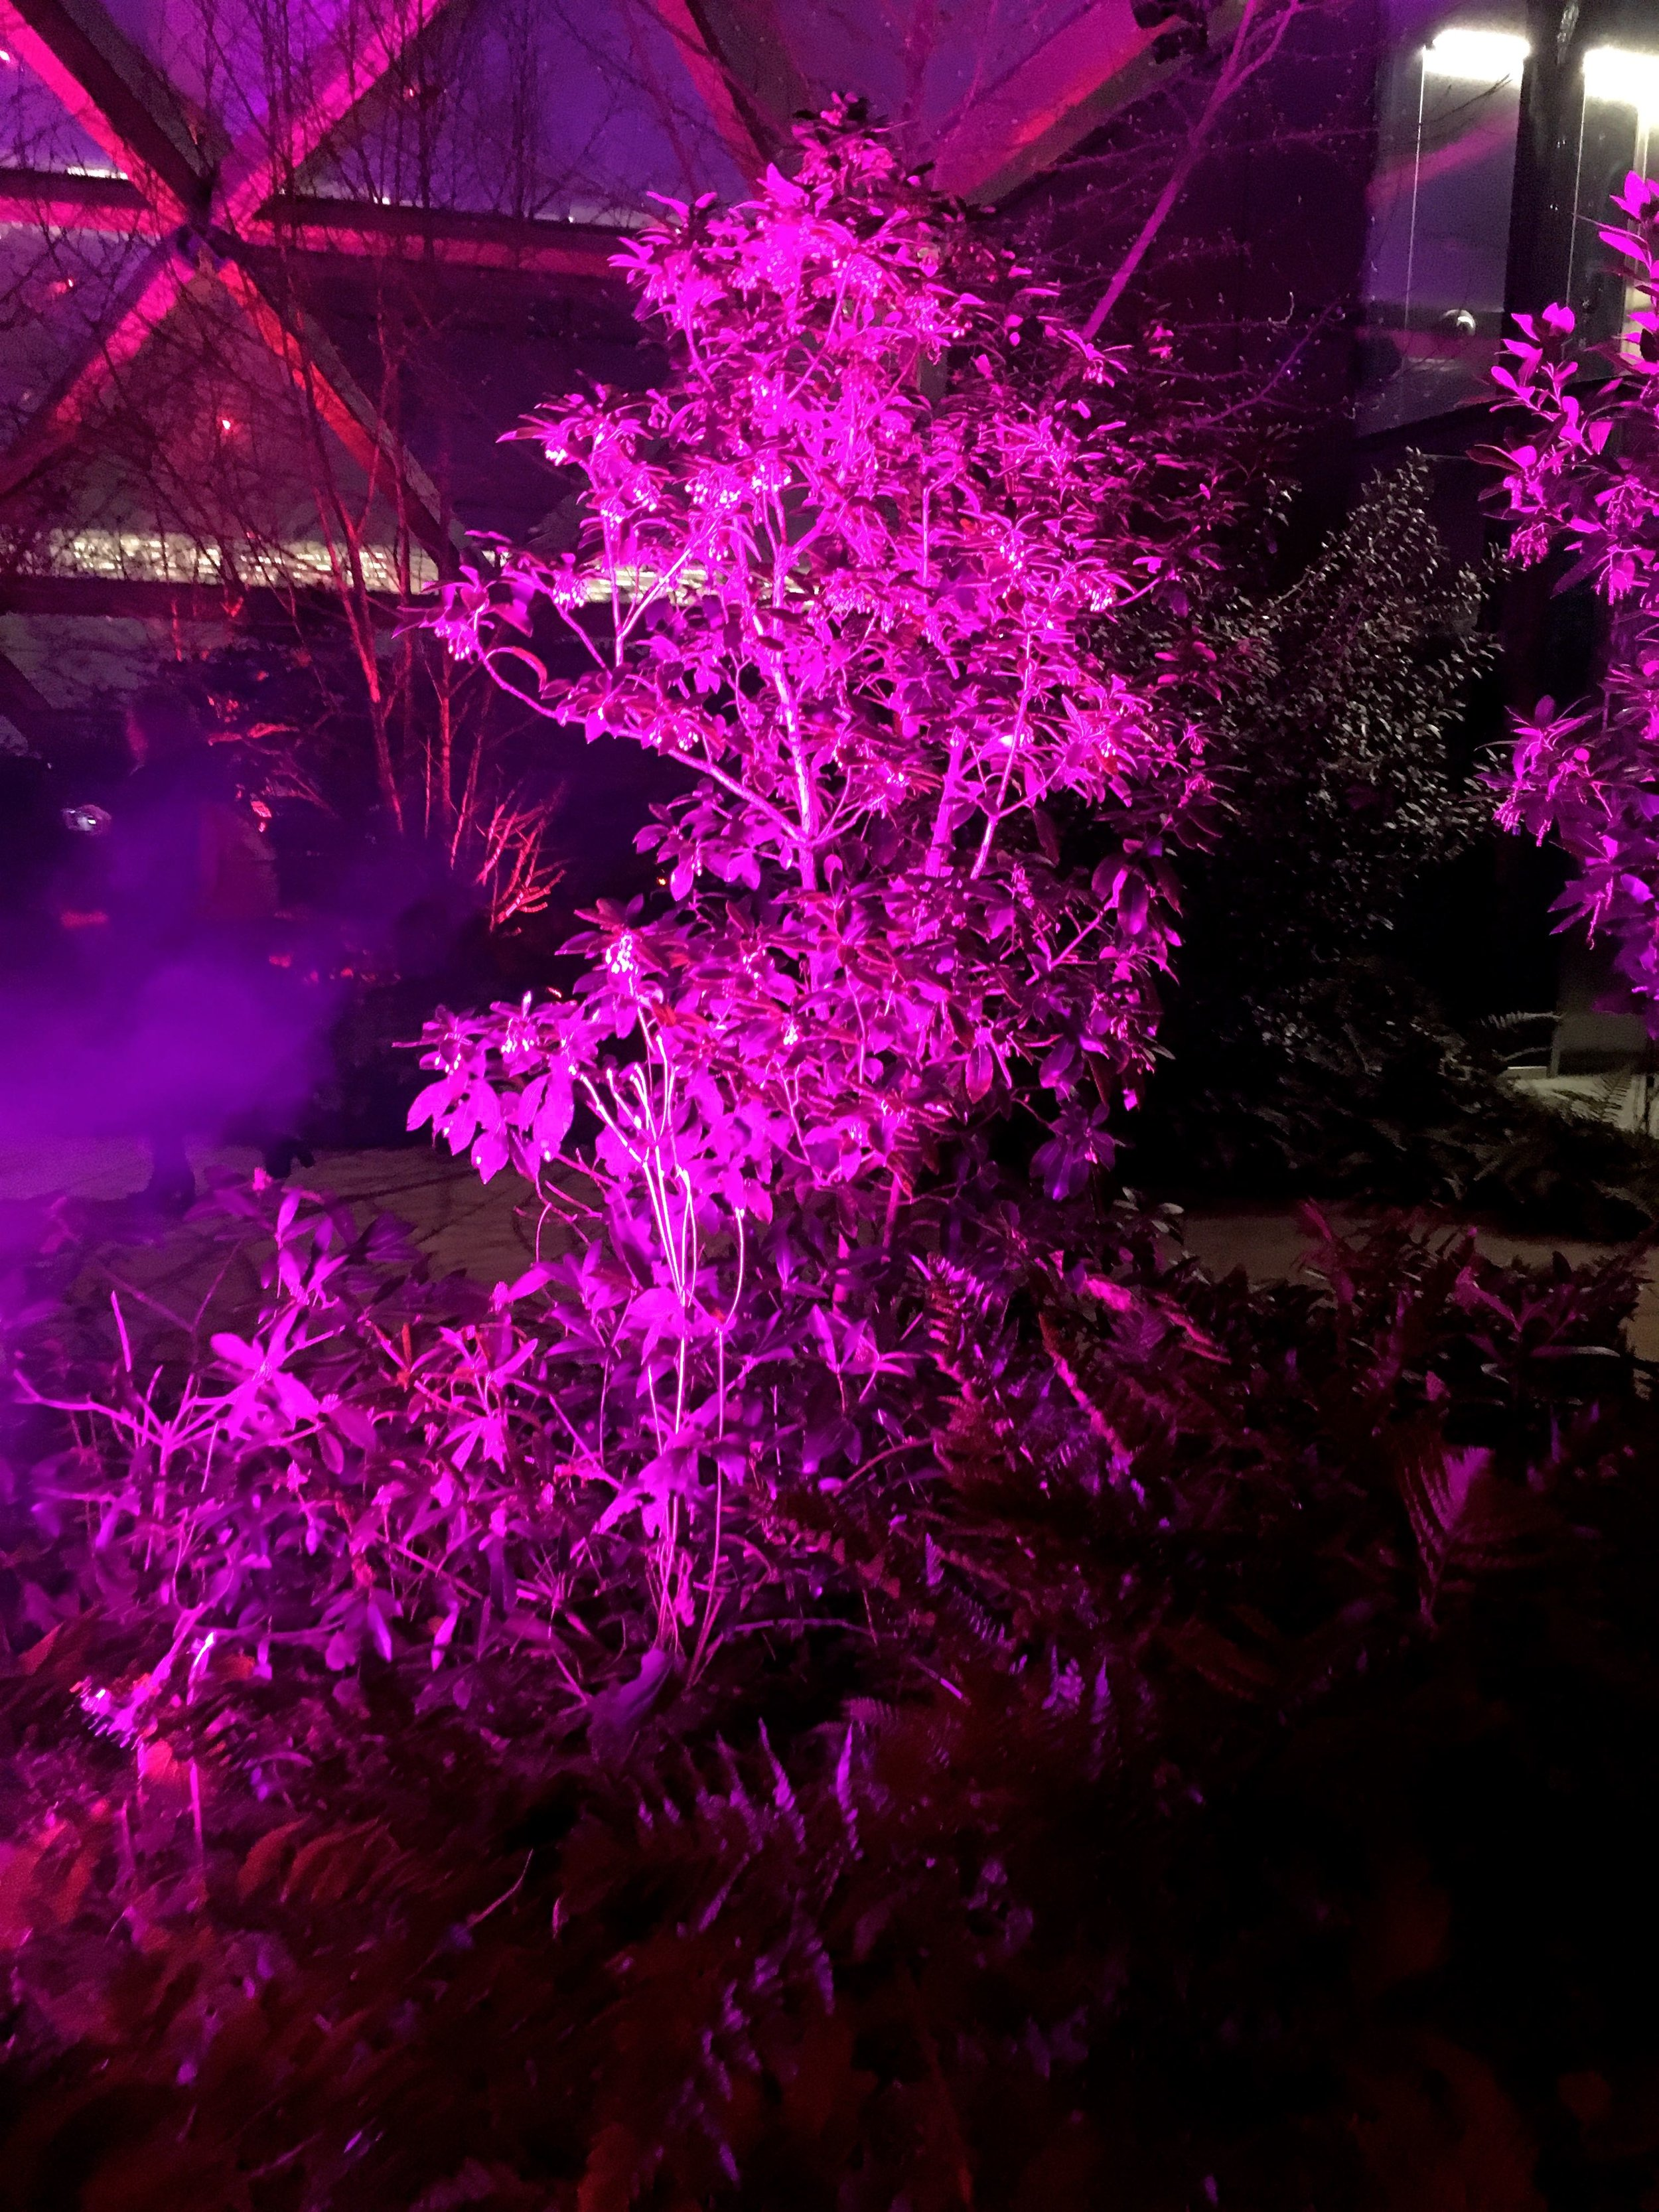 lit up pink - another colour in the crossrail place garden